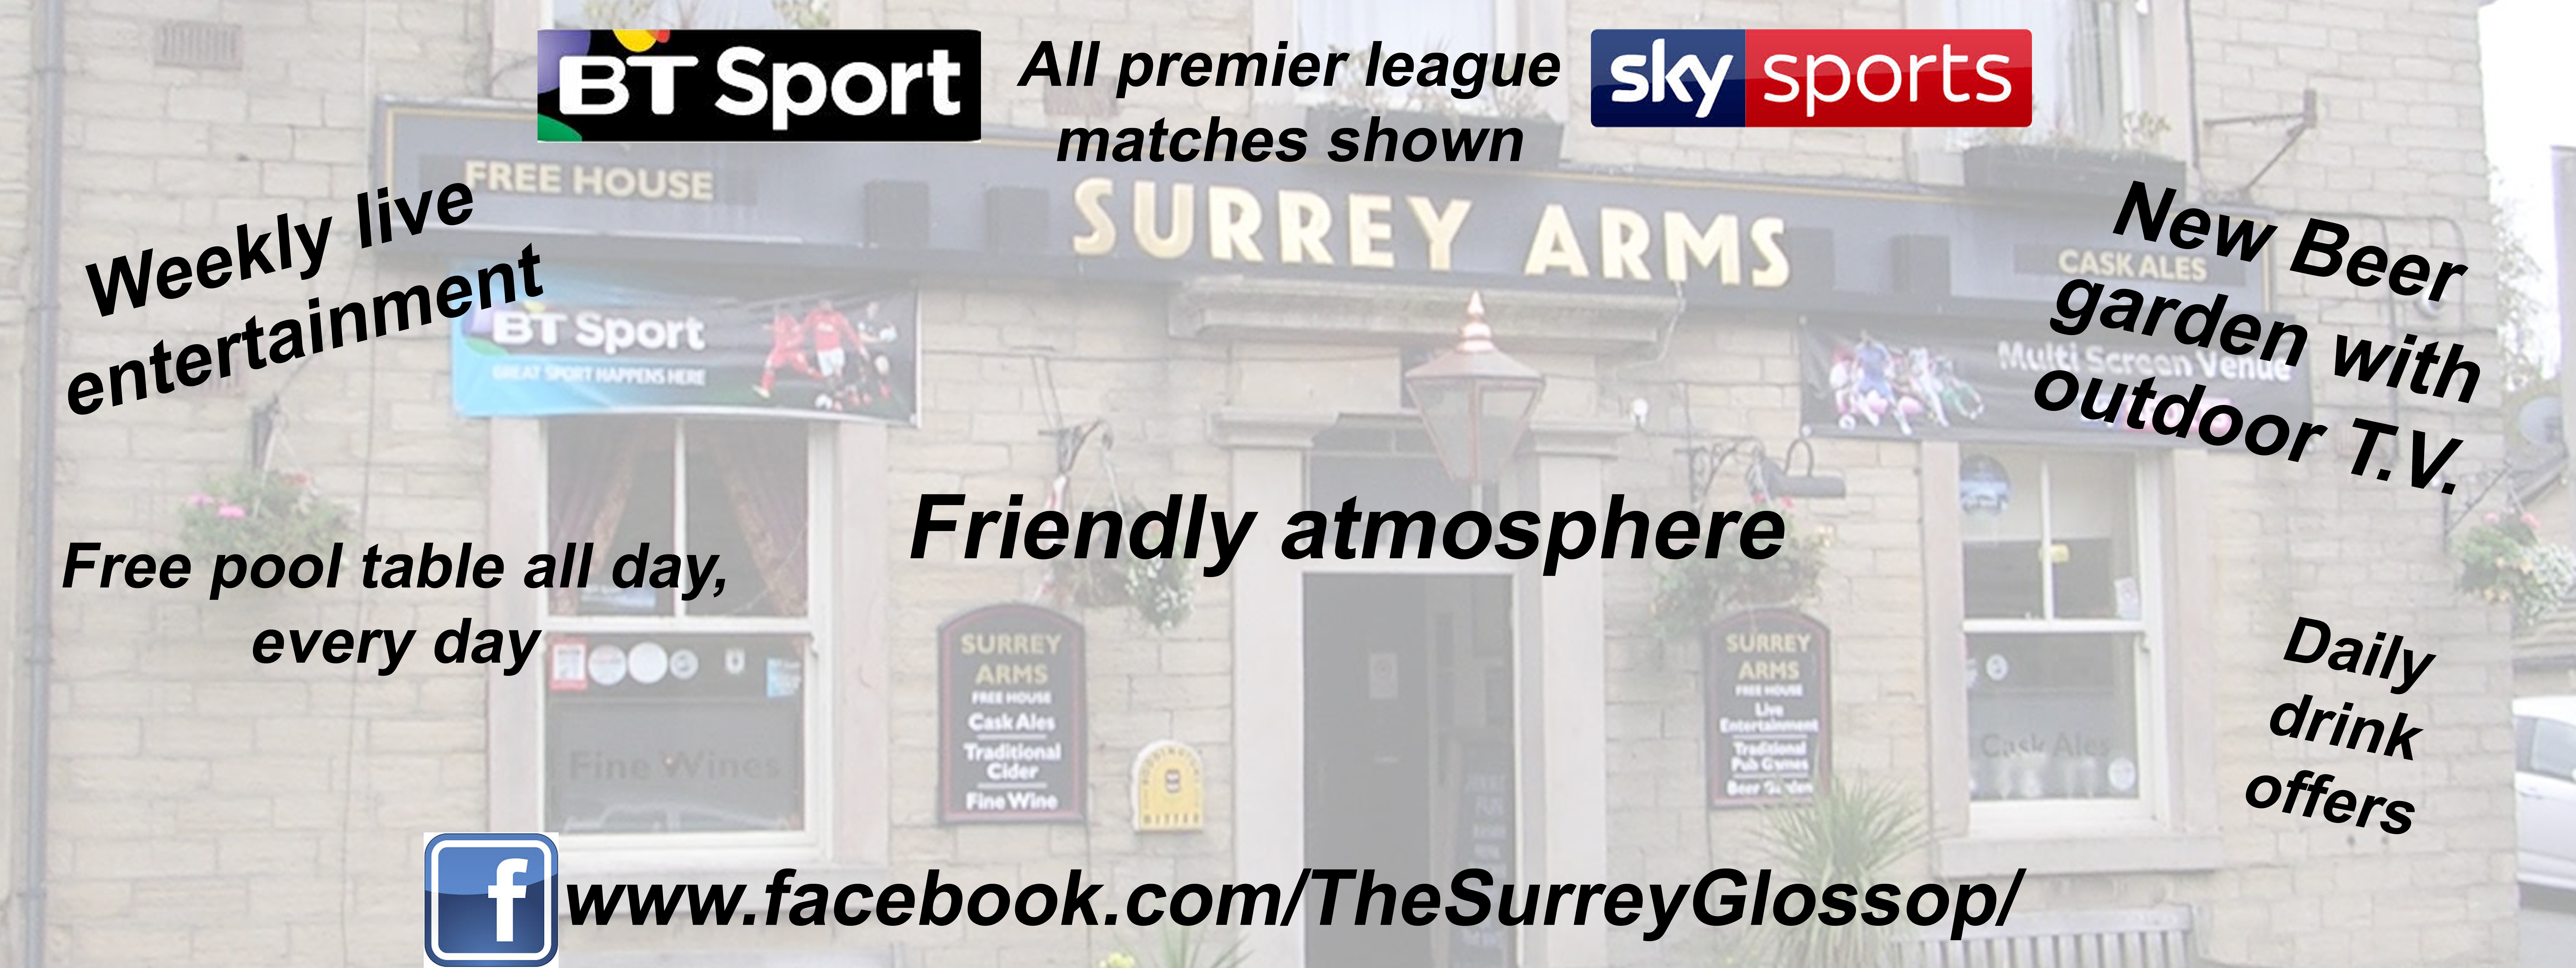 The Surrey Arms